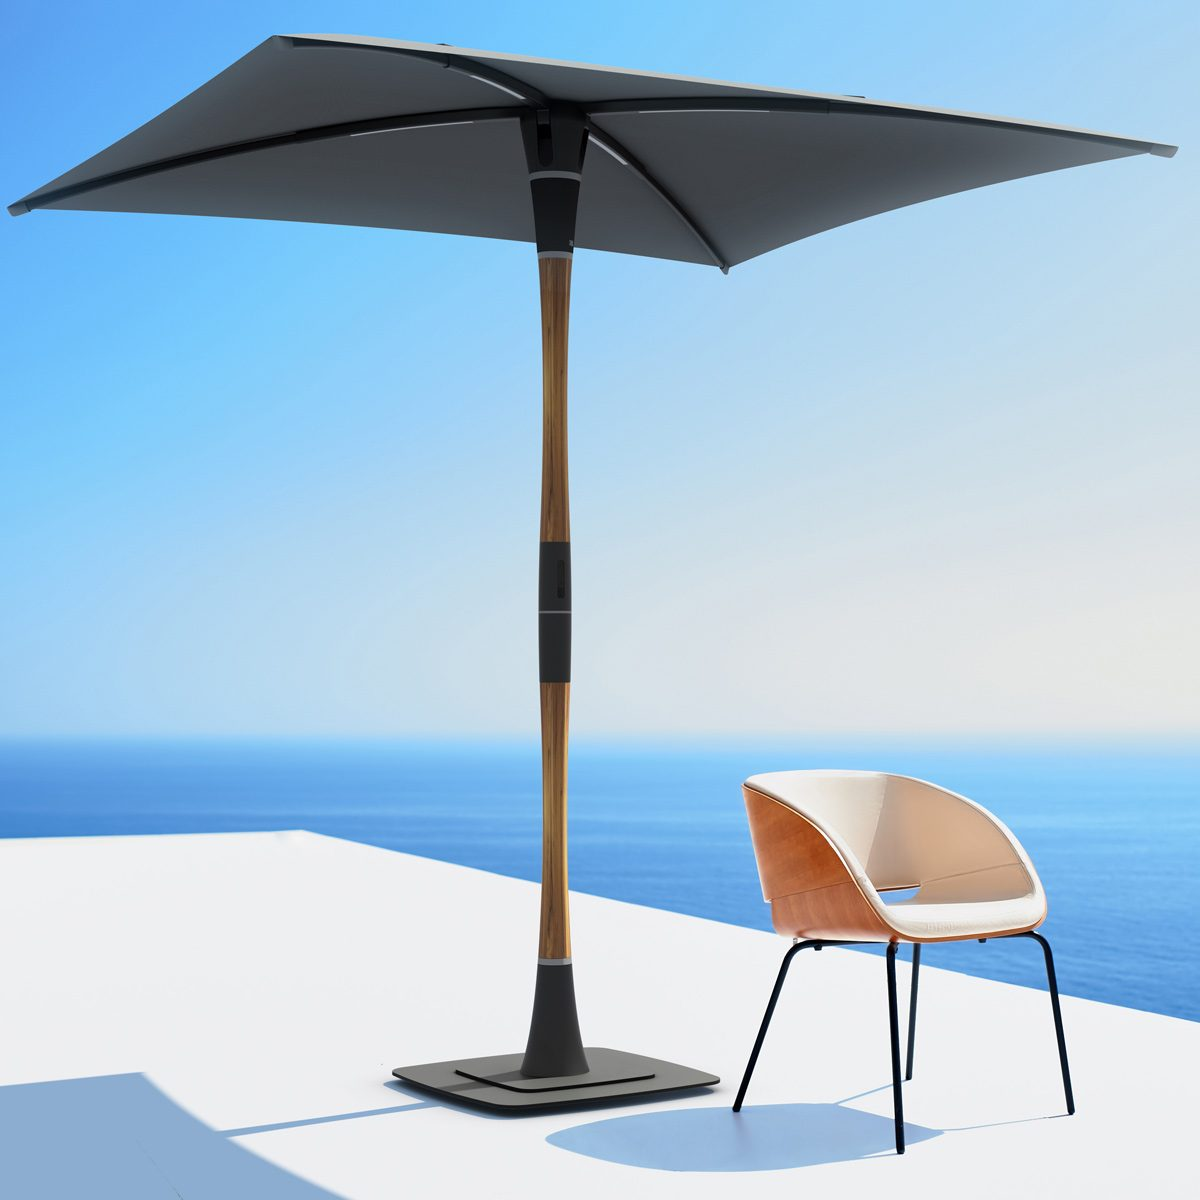 ShadeCraft-Blossom Umbrella